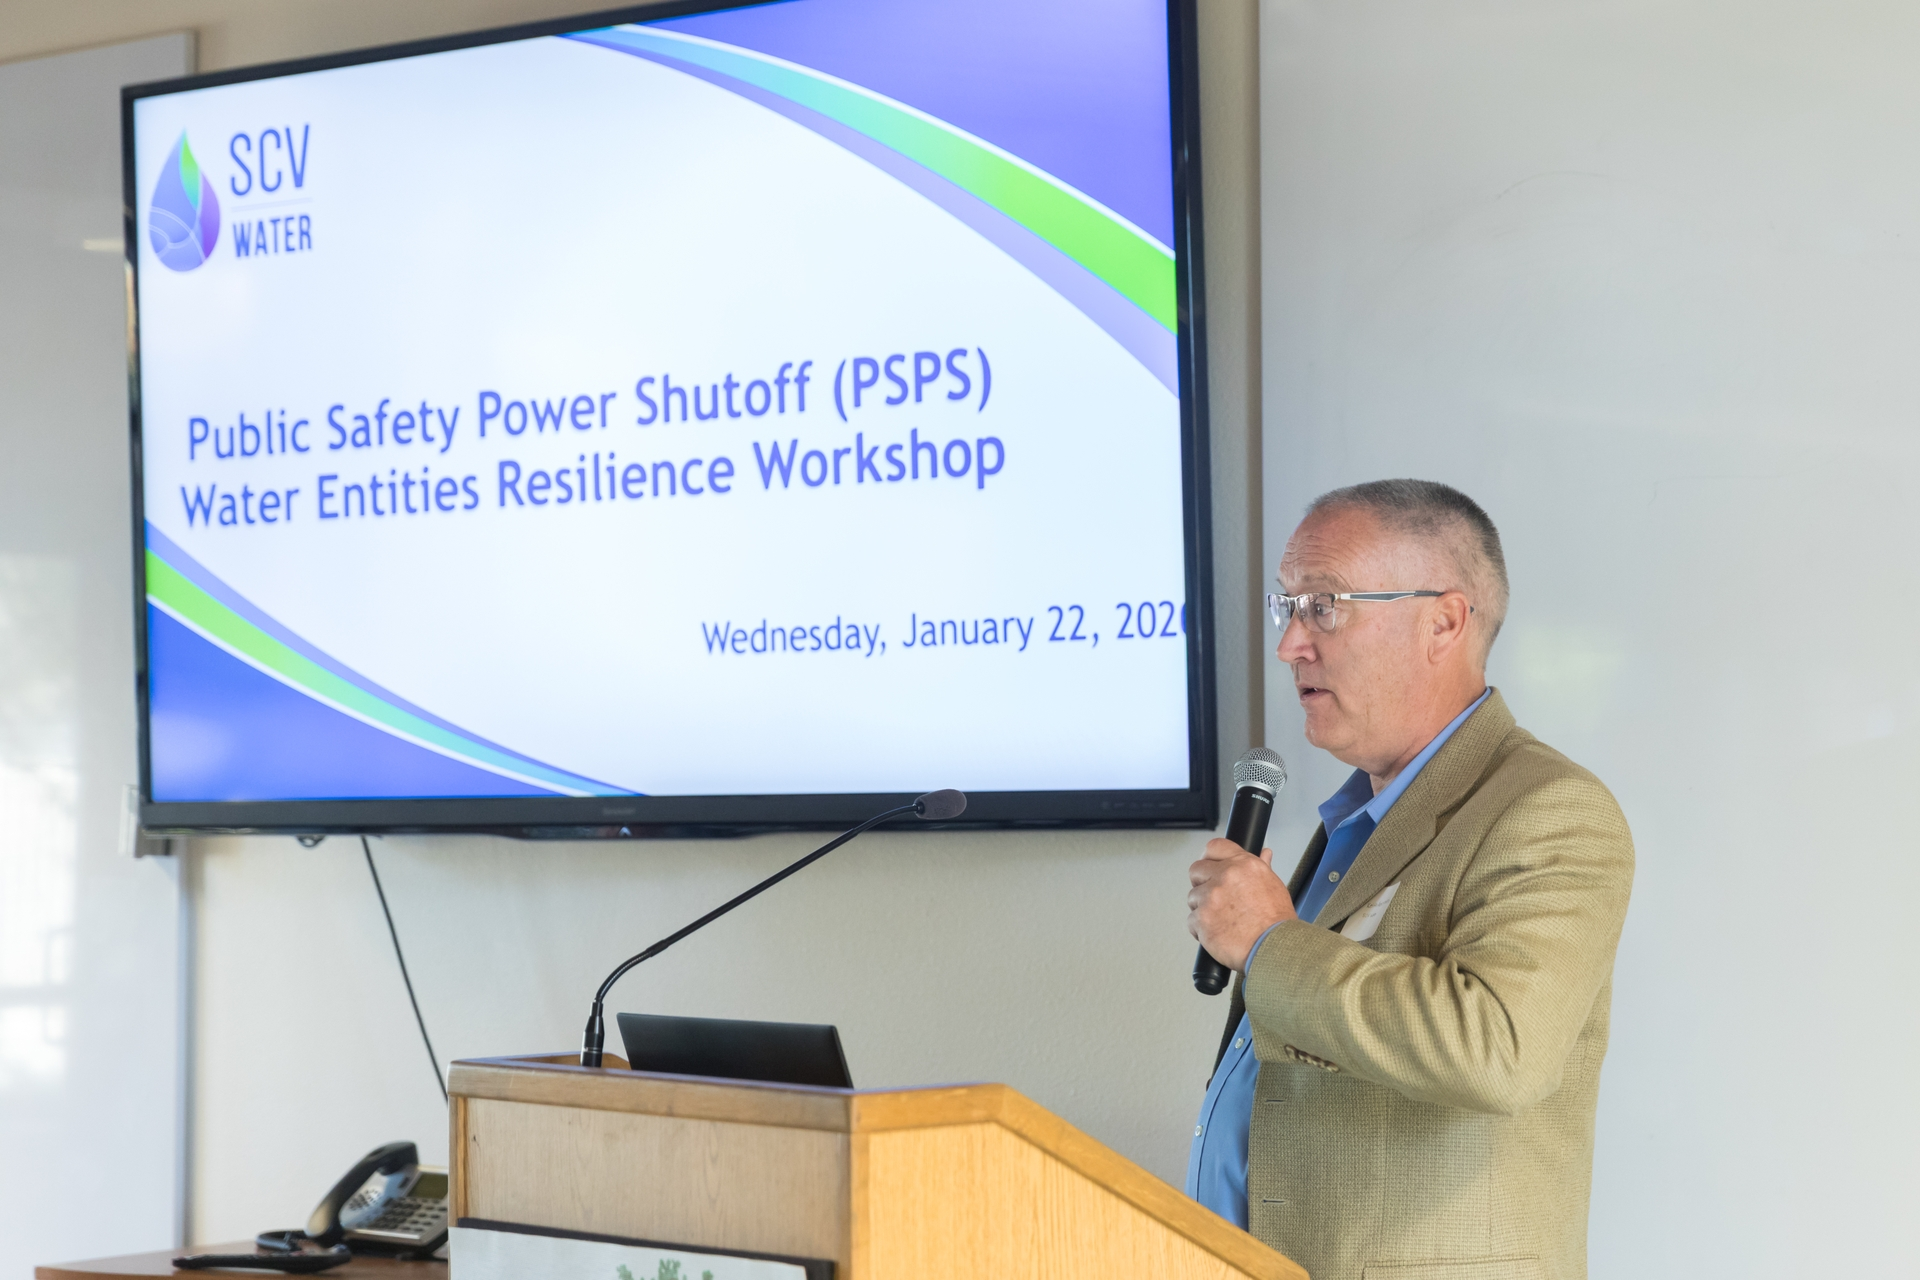 Keith Abercrombie, chief operating officer of the Santa Clarita Valley Water Agency, speaks at a recent resiliency workshop hosted by SCE.